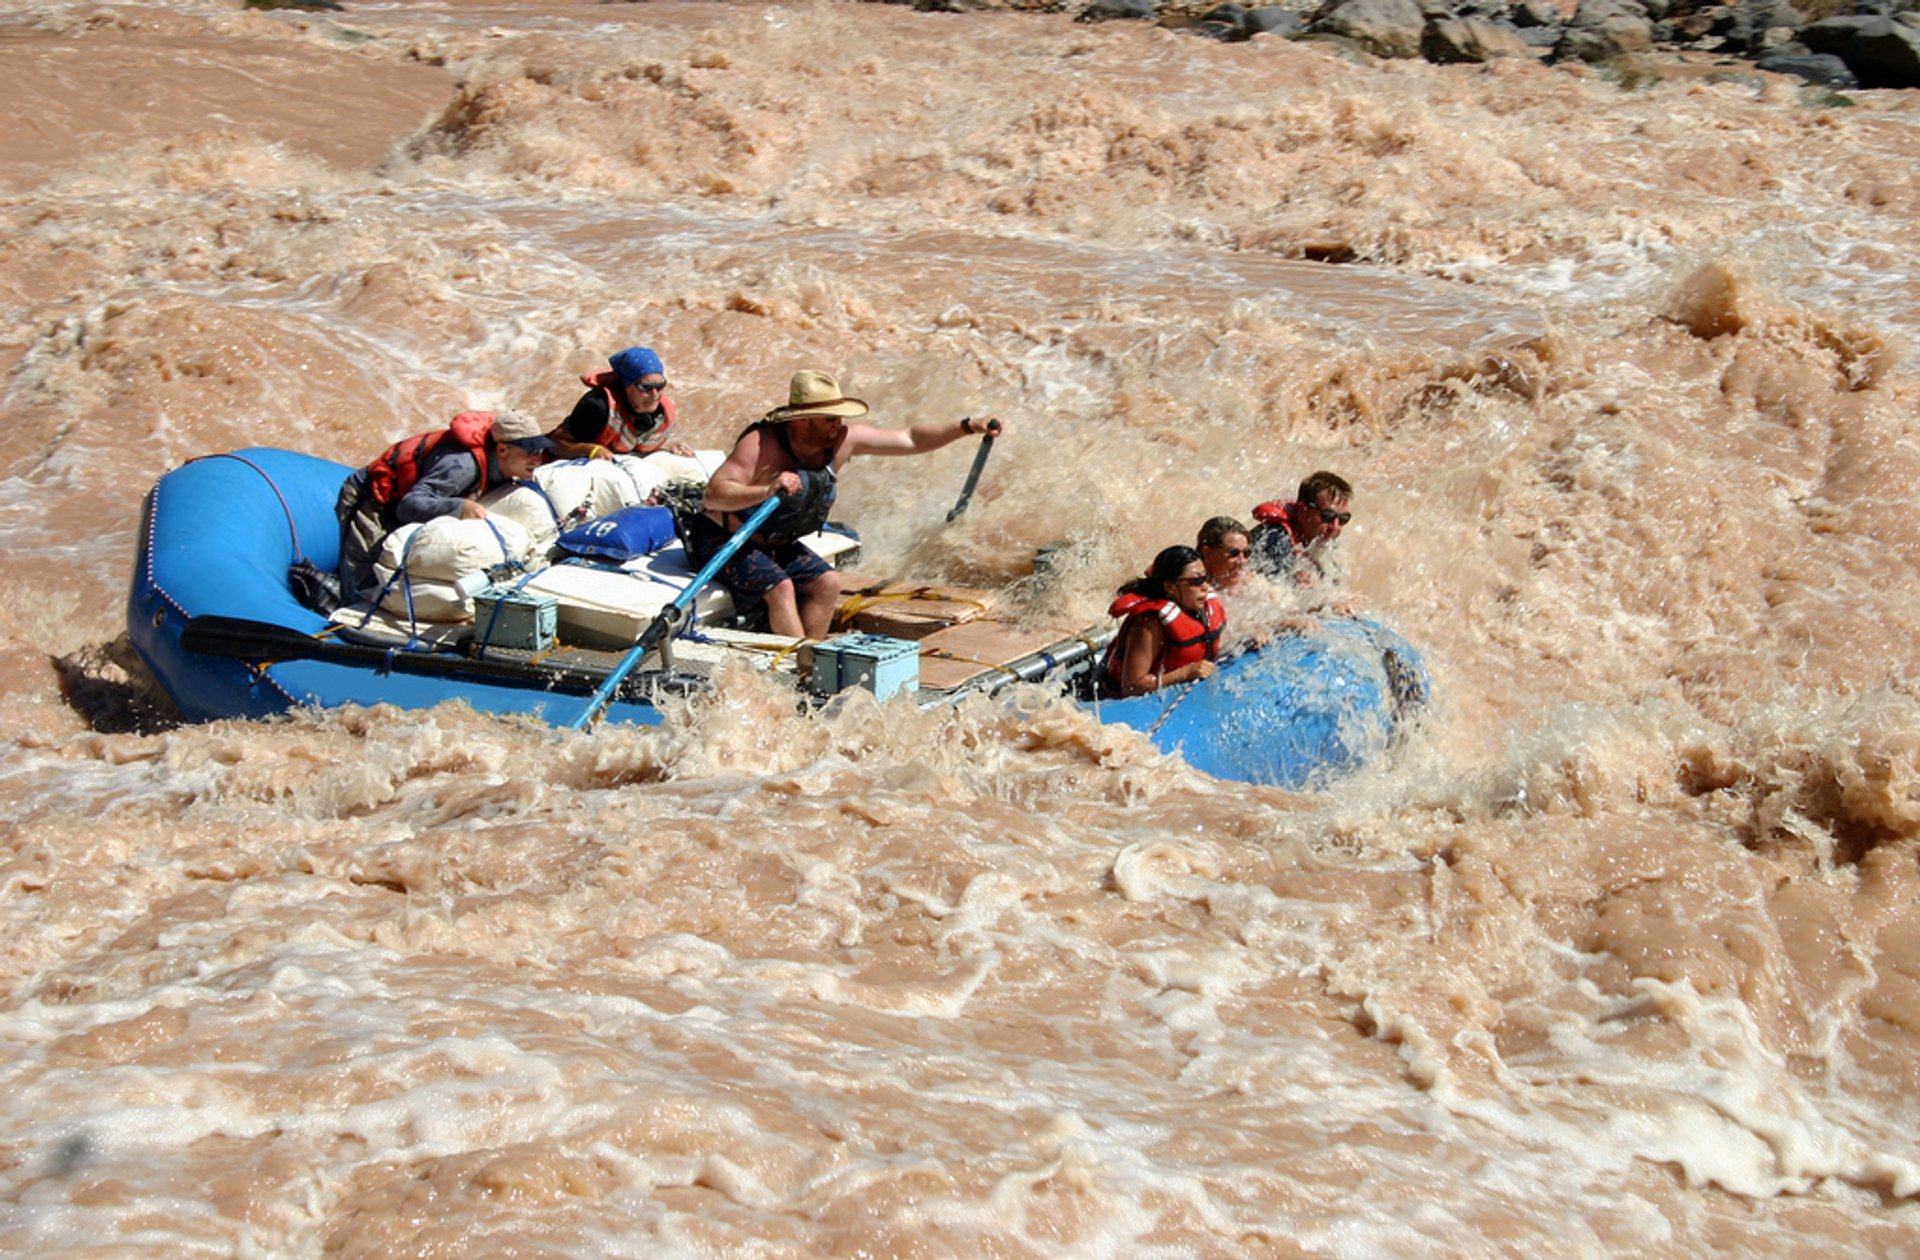 River Rafting in Grand Canyon 2019 - Best Time